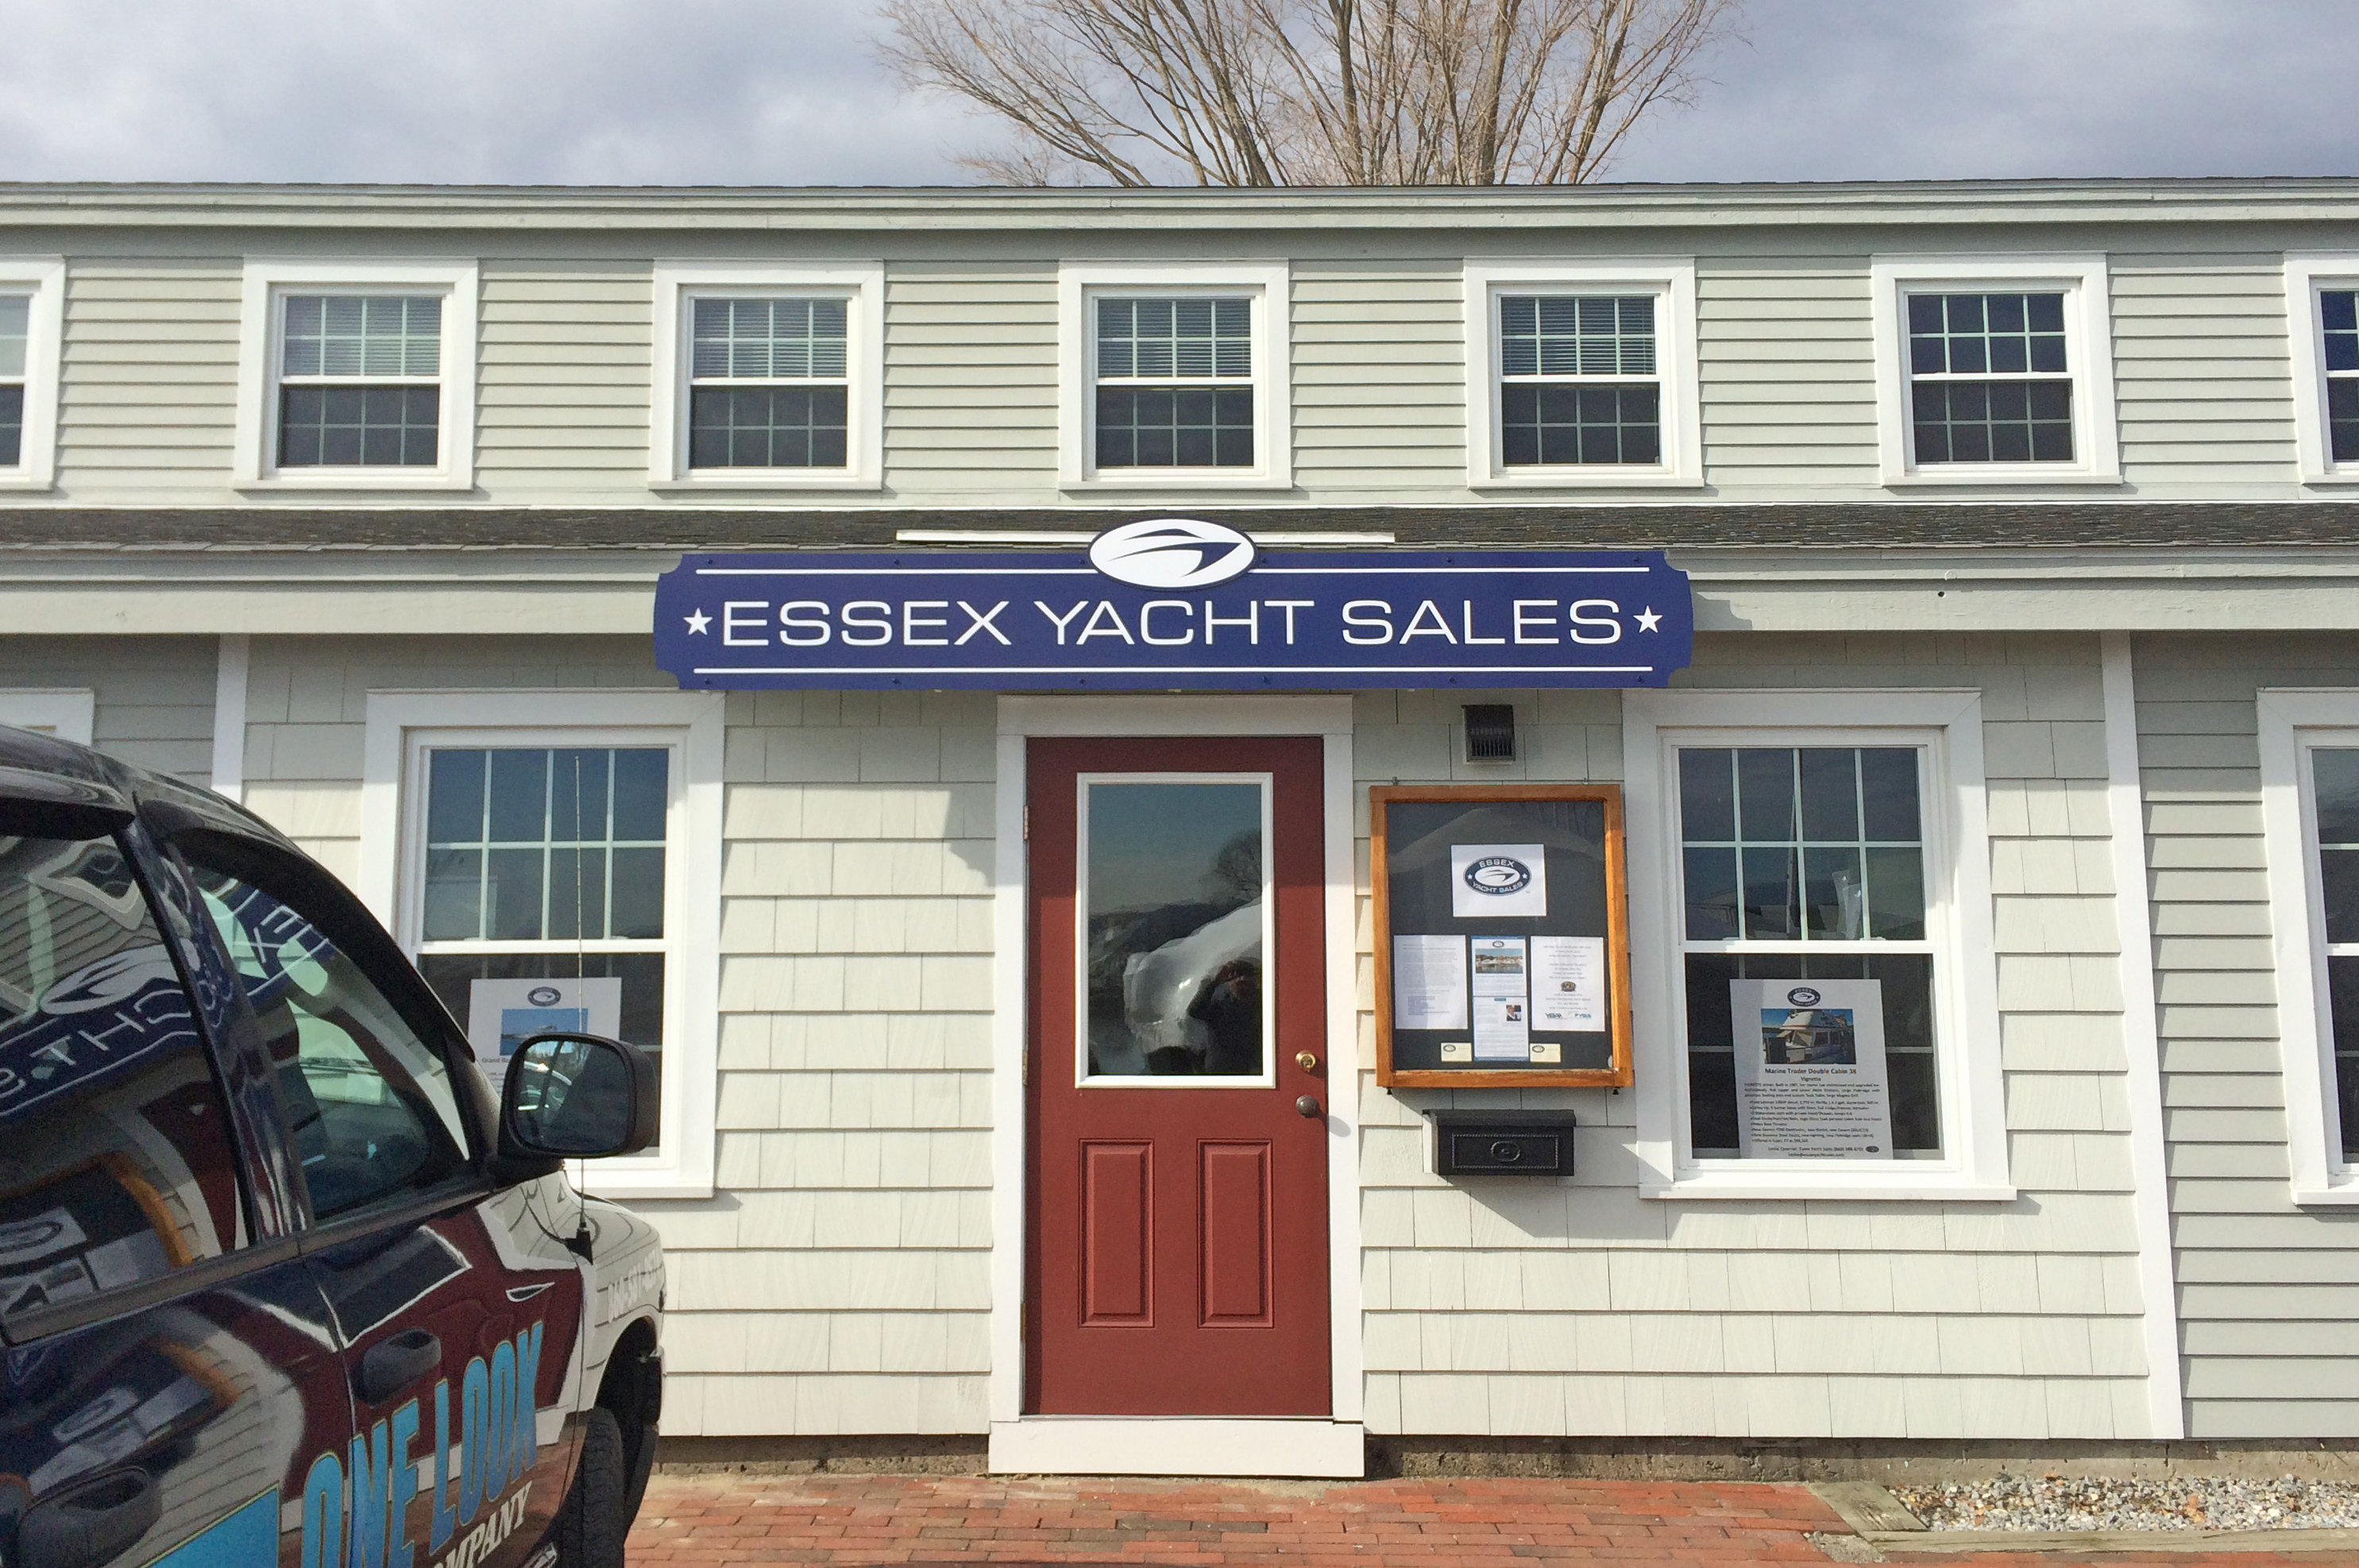 Essex Yacht Sales